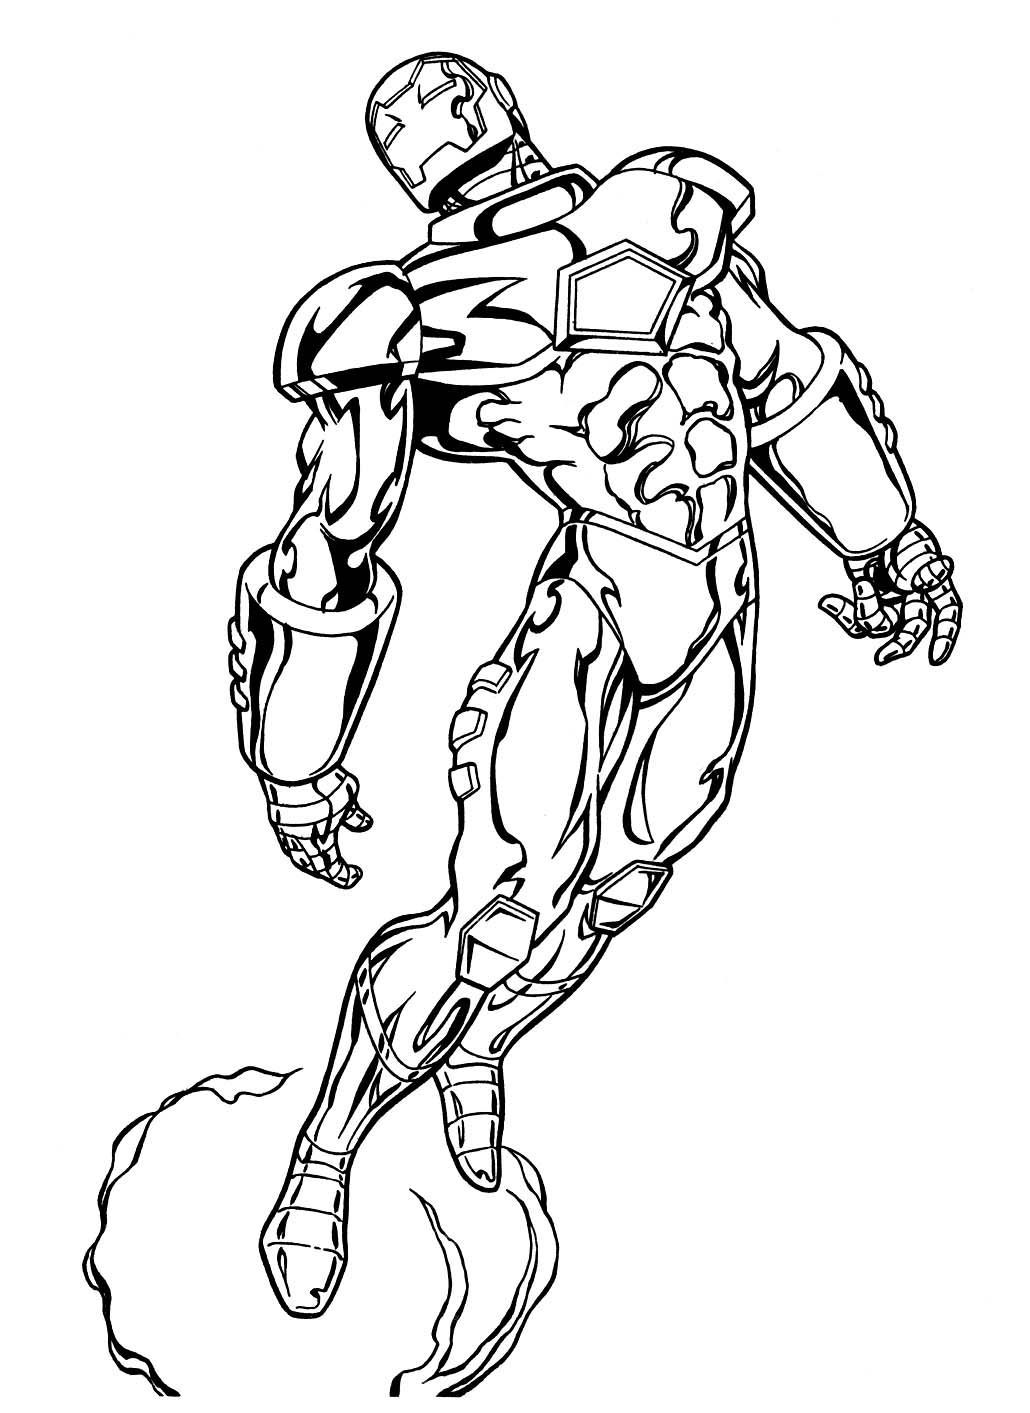 Ironman Coloring Pages Free Printable Superhero Coloring Pages Superhero Coloring Avengers Coloring Pages